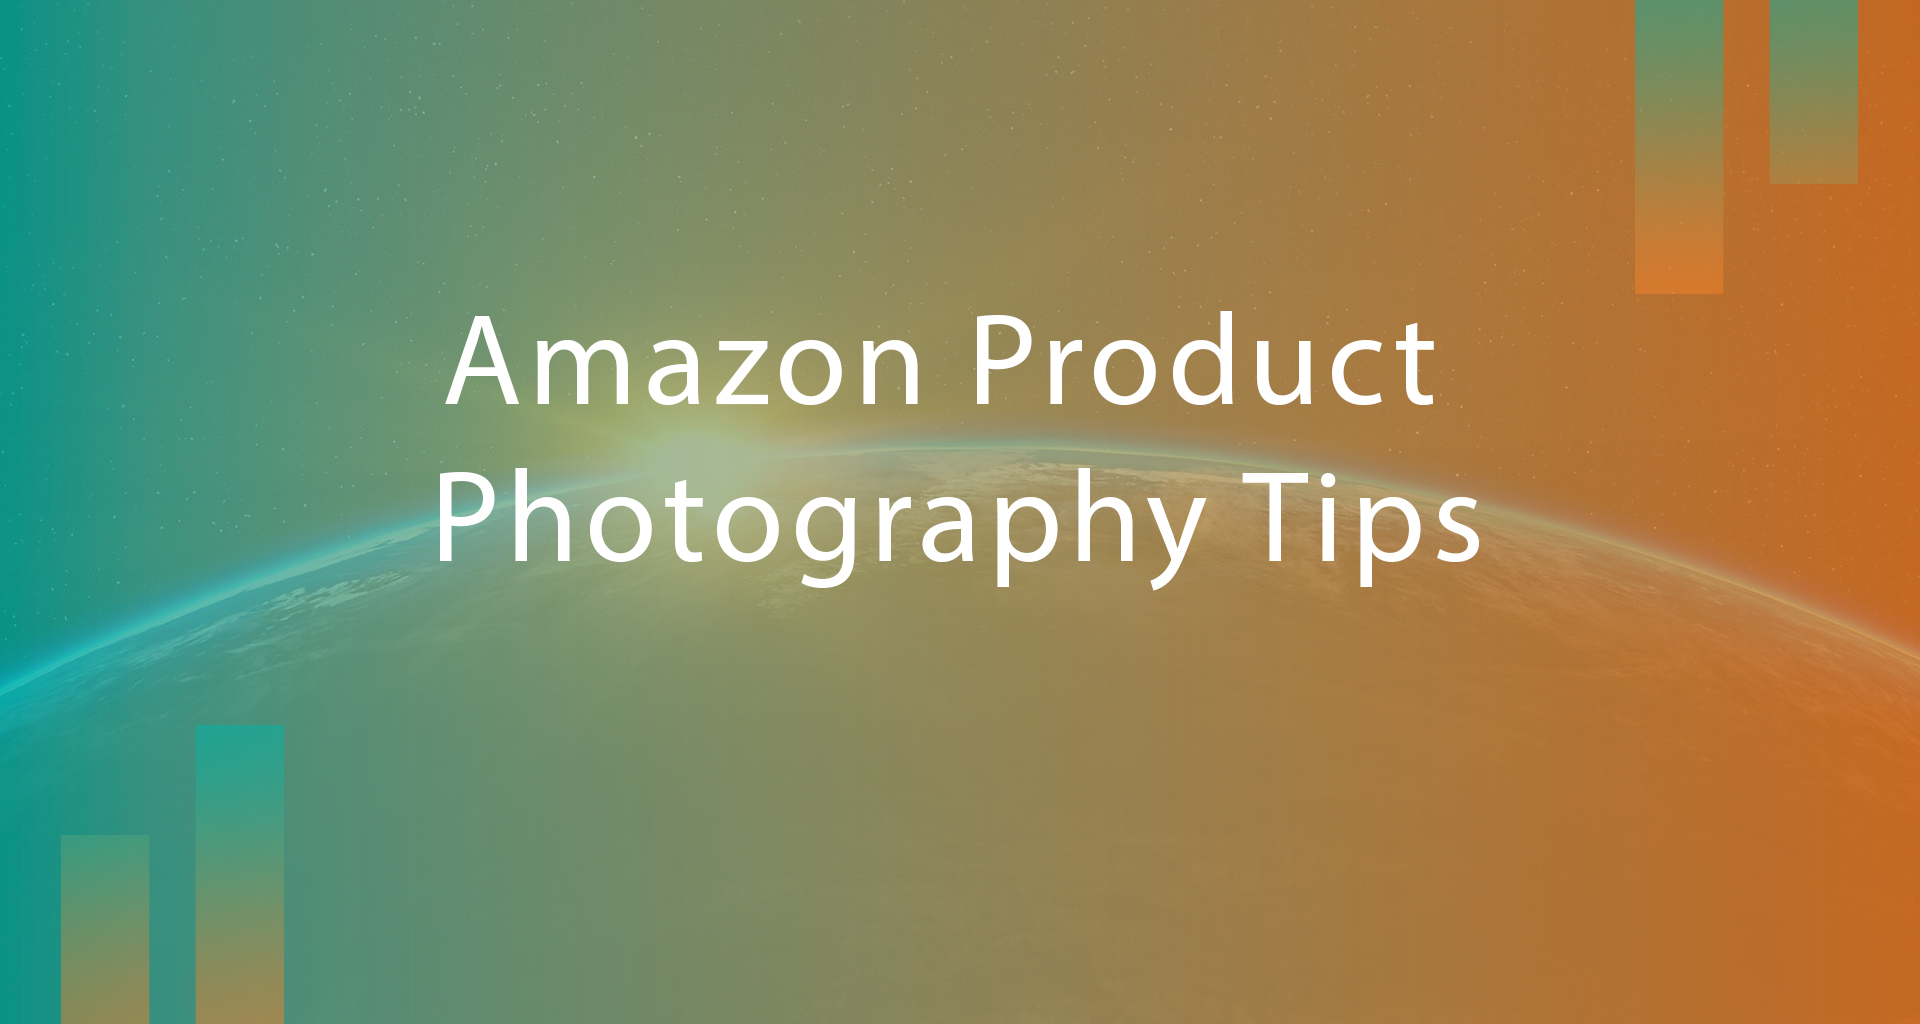 Amazon Product Photography Tips: